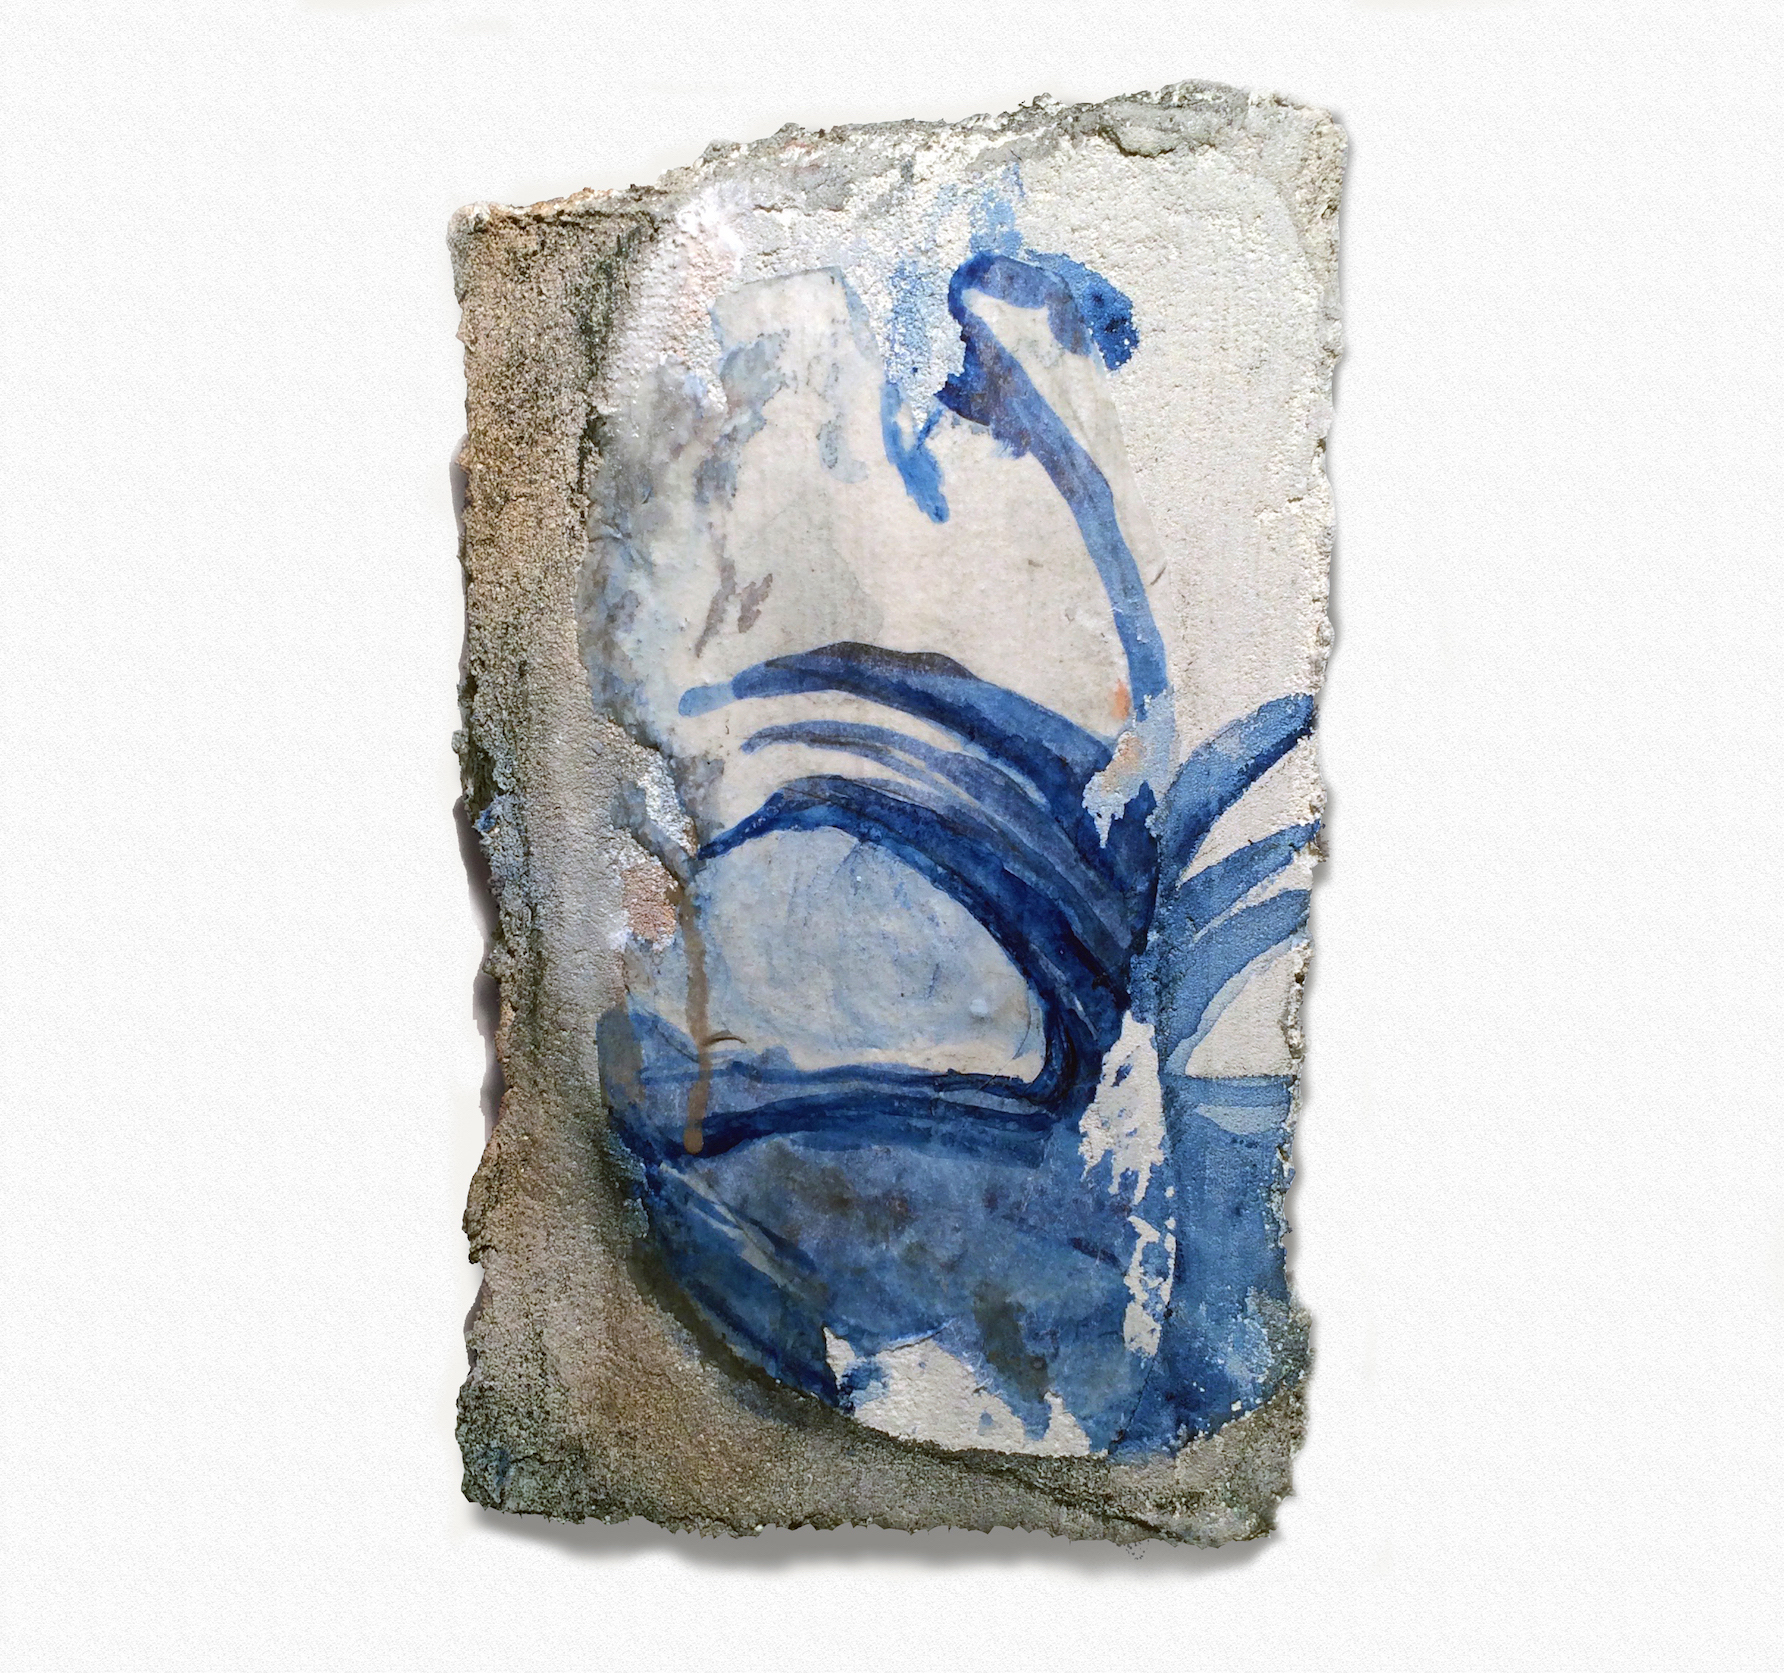 Nancy Wisti Grayson,  Papyrus Tile , Acrylic, graphite, vellum, and grout on recycled styrofoam, 11 x 6.5 x 2.5 inches